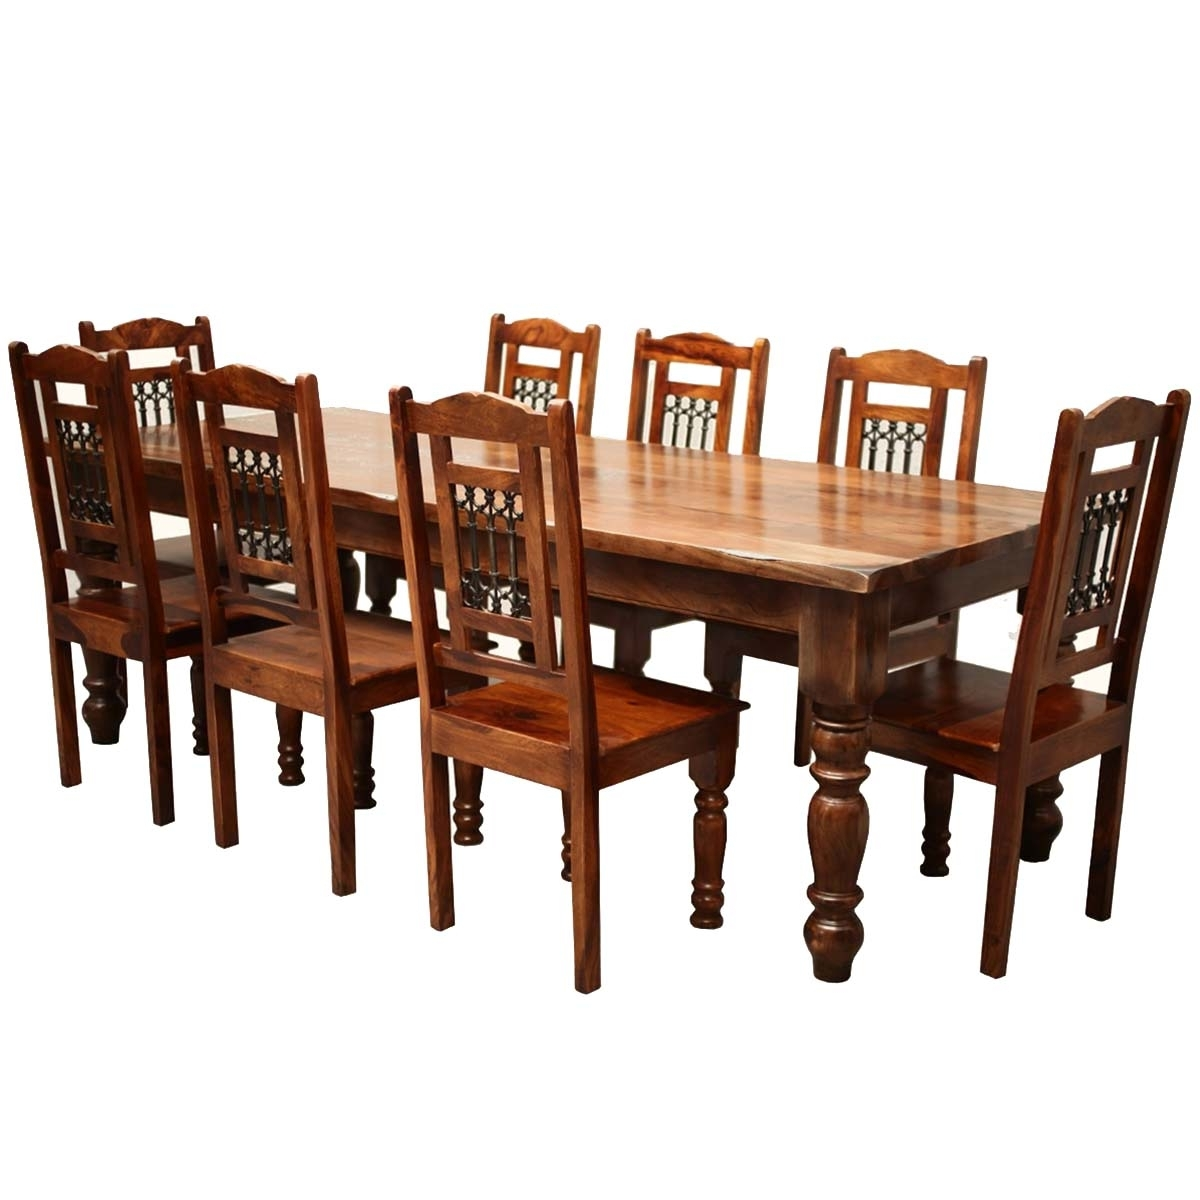 8 Seater Round Dining Table And Chairs With Current Rustic Furniture Solid Wood Large Dining Table & 8 Chair Set (View 12 of 25)